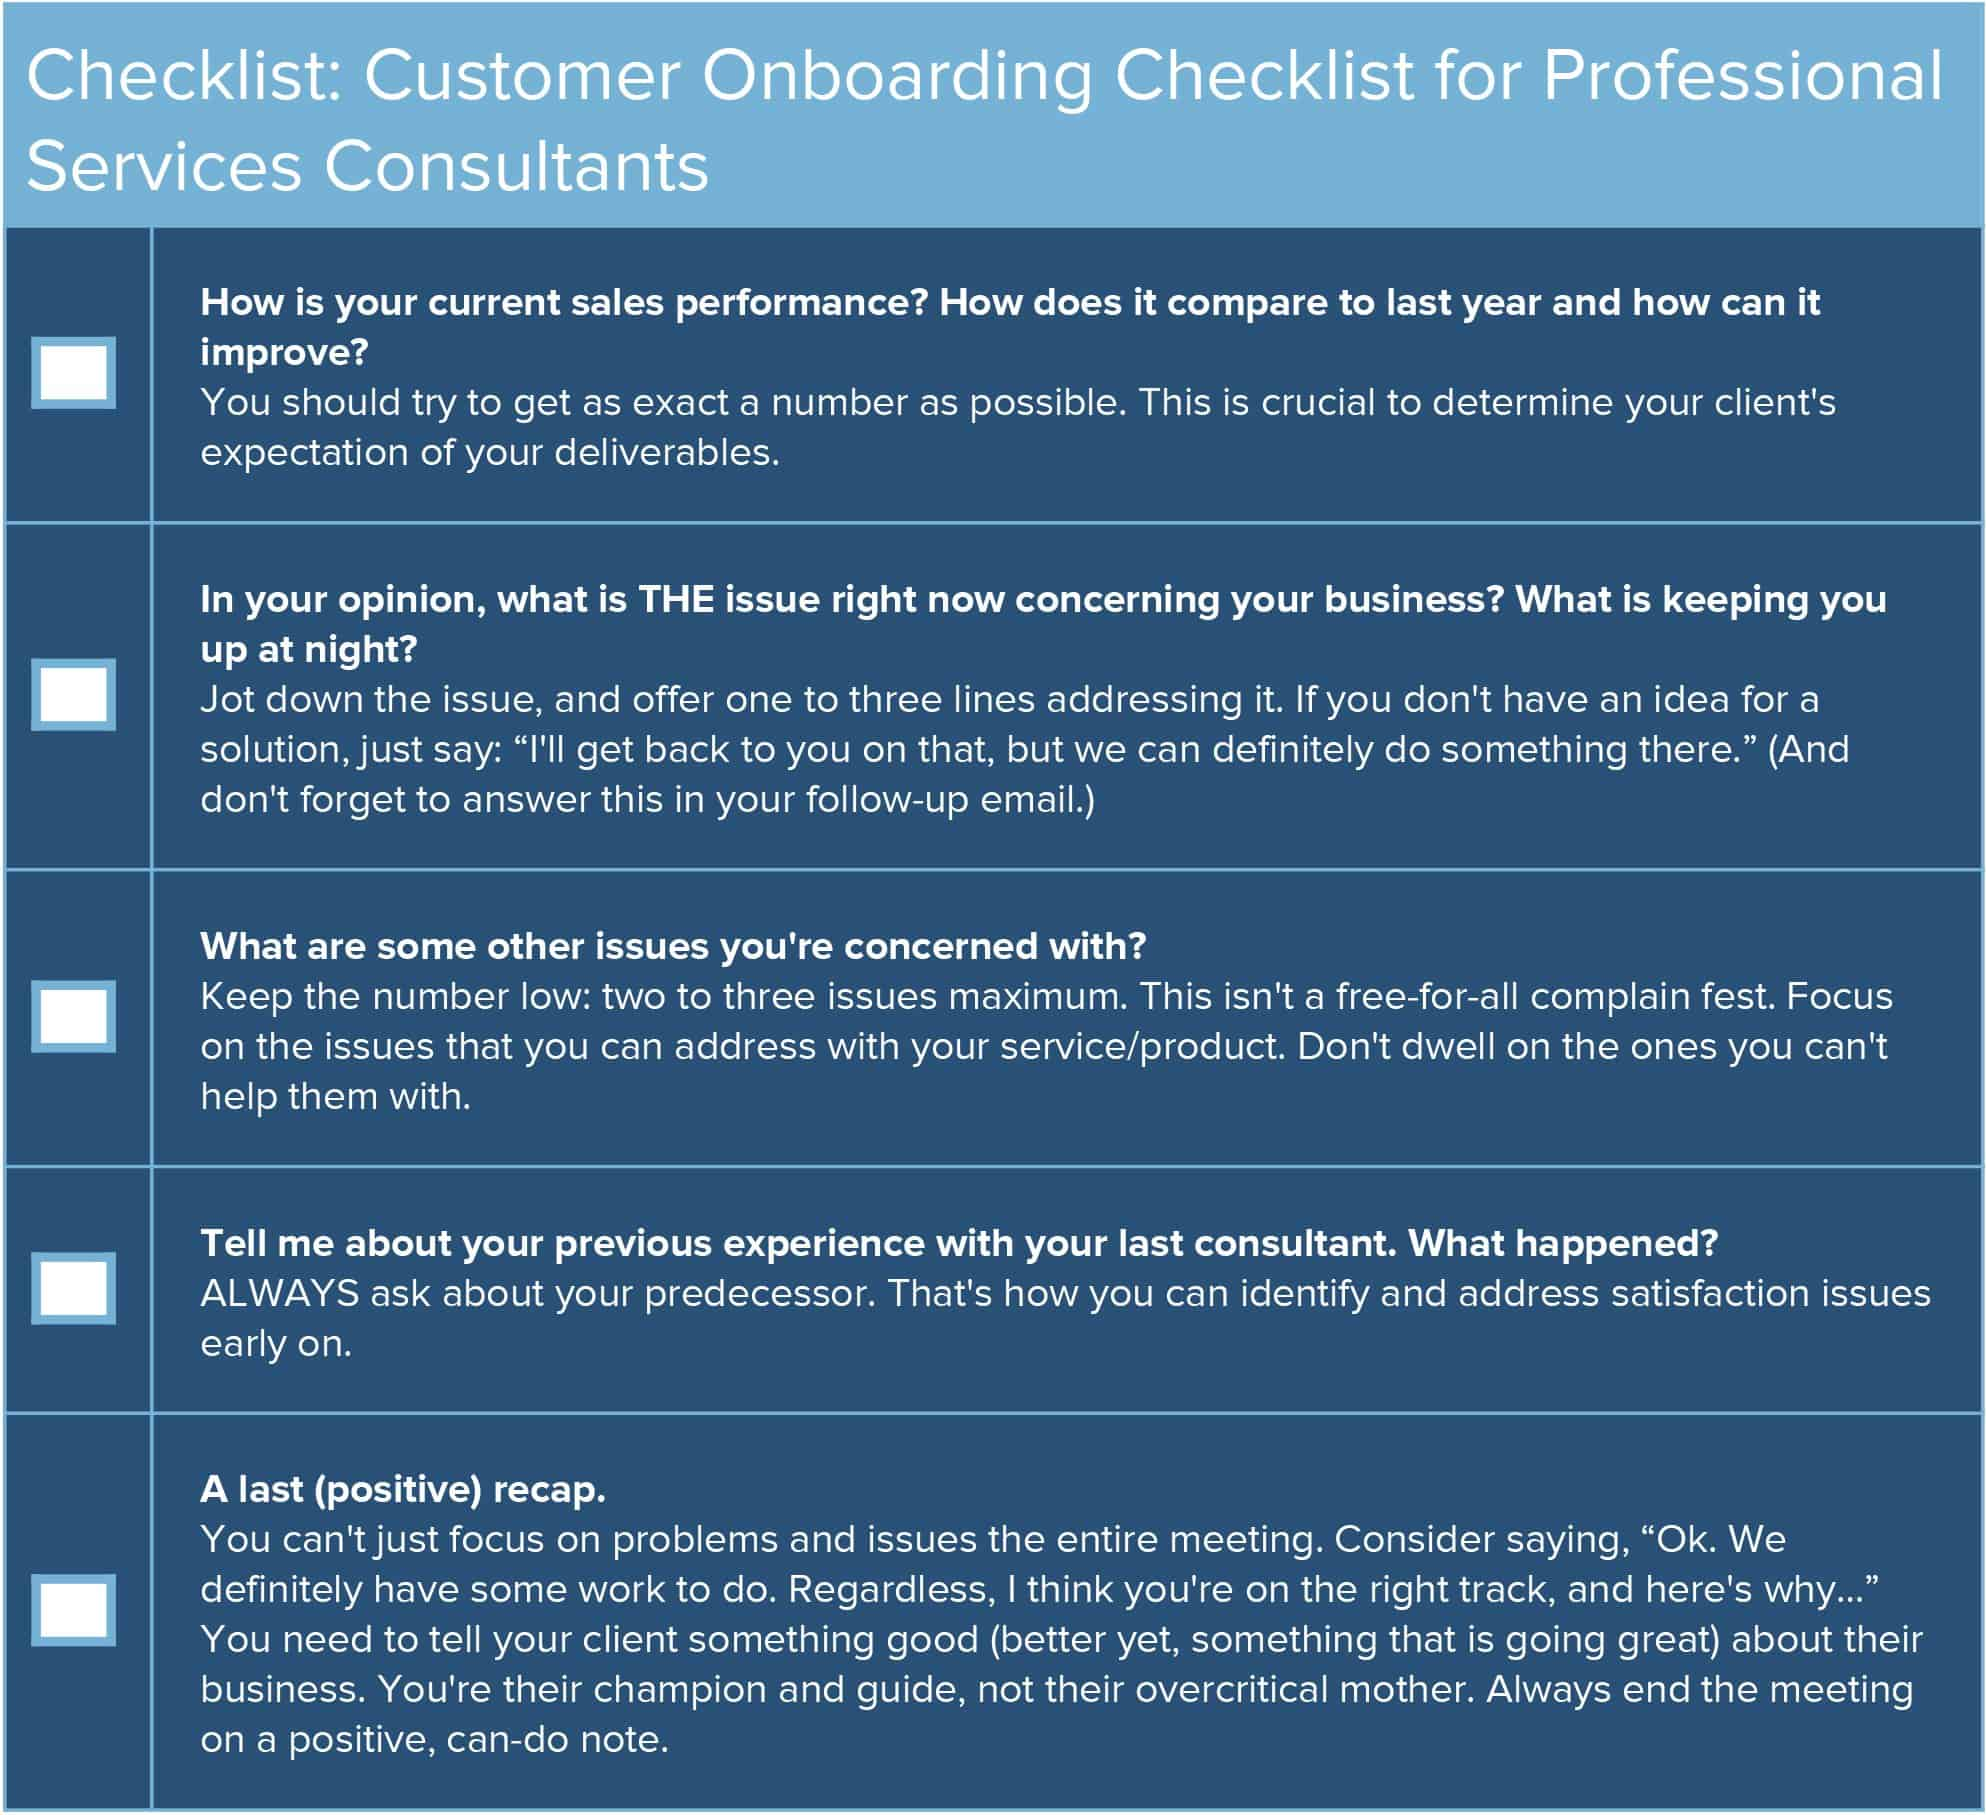 customer onboarding expert tips and tools